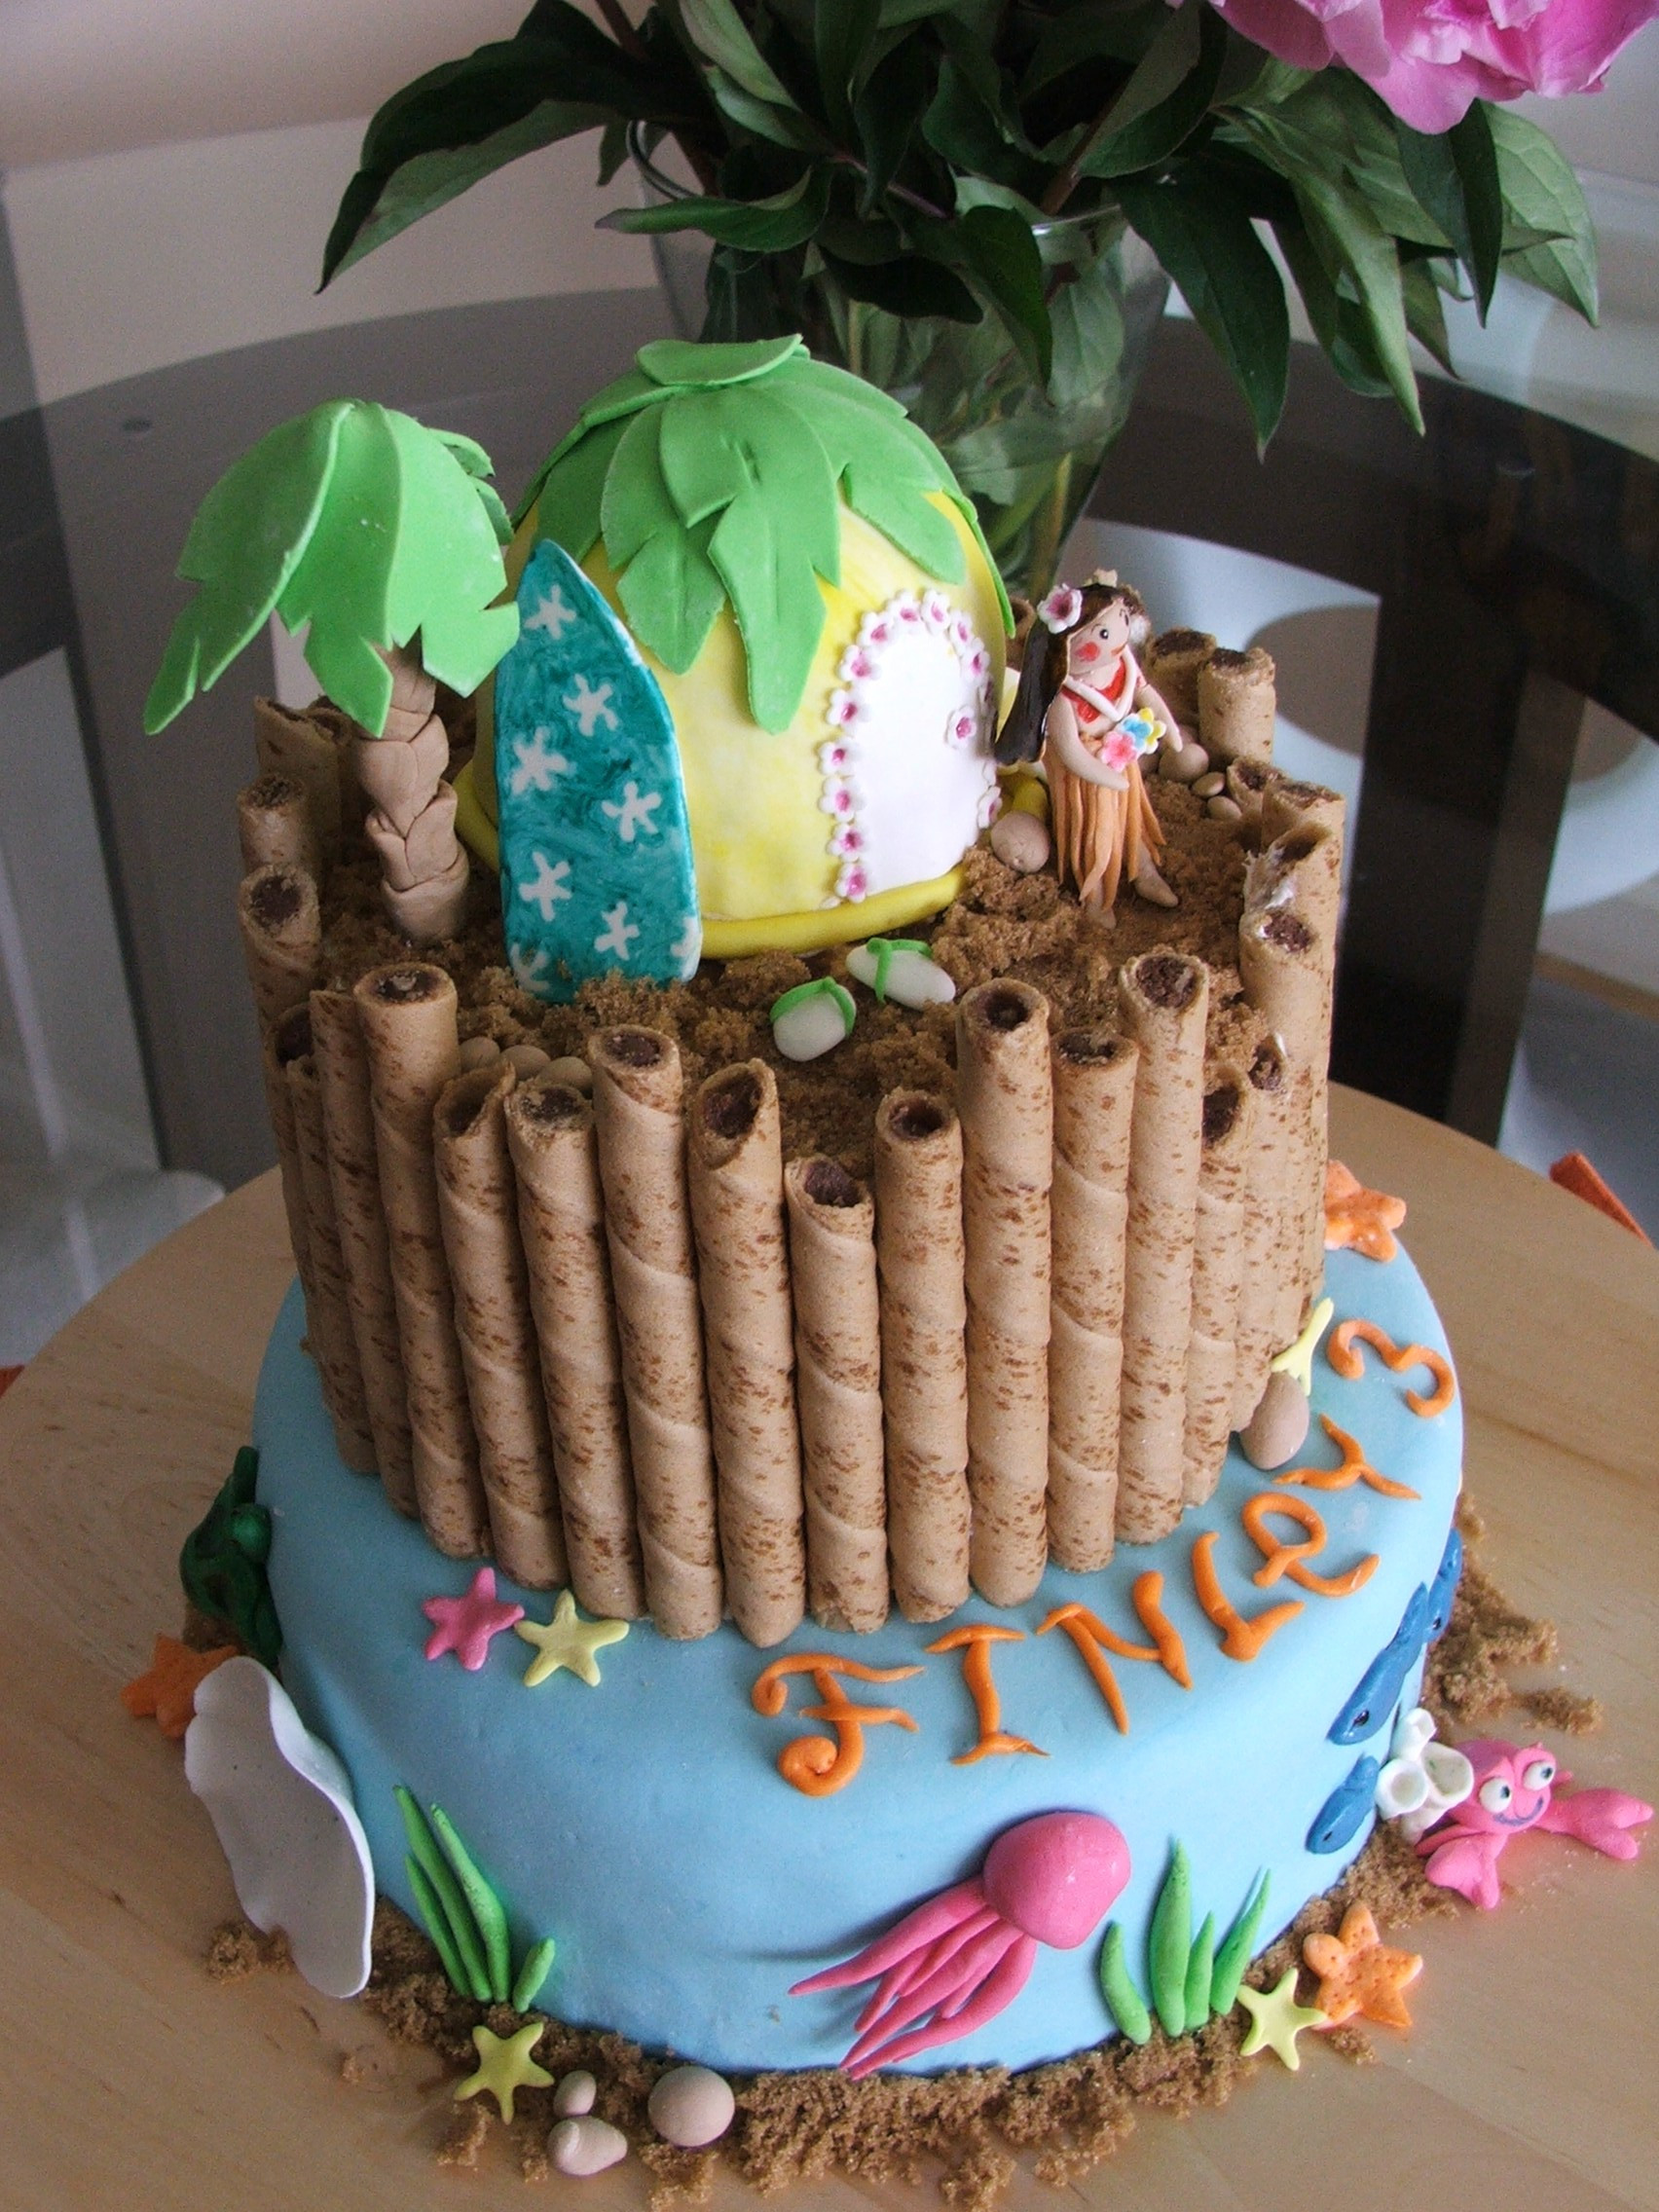 Best ideas about Birthday Party Cake . Save or Pin Birthday Cakes Cakes Inc Now.